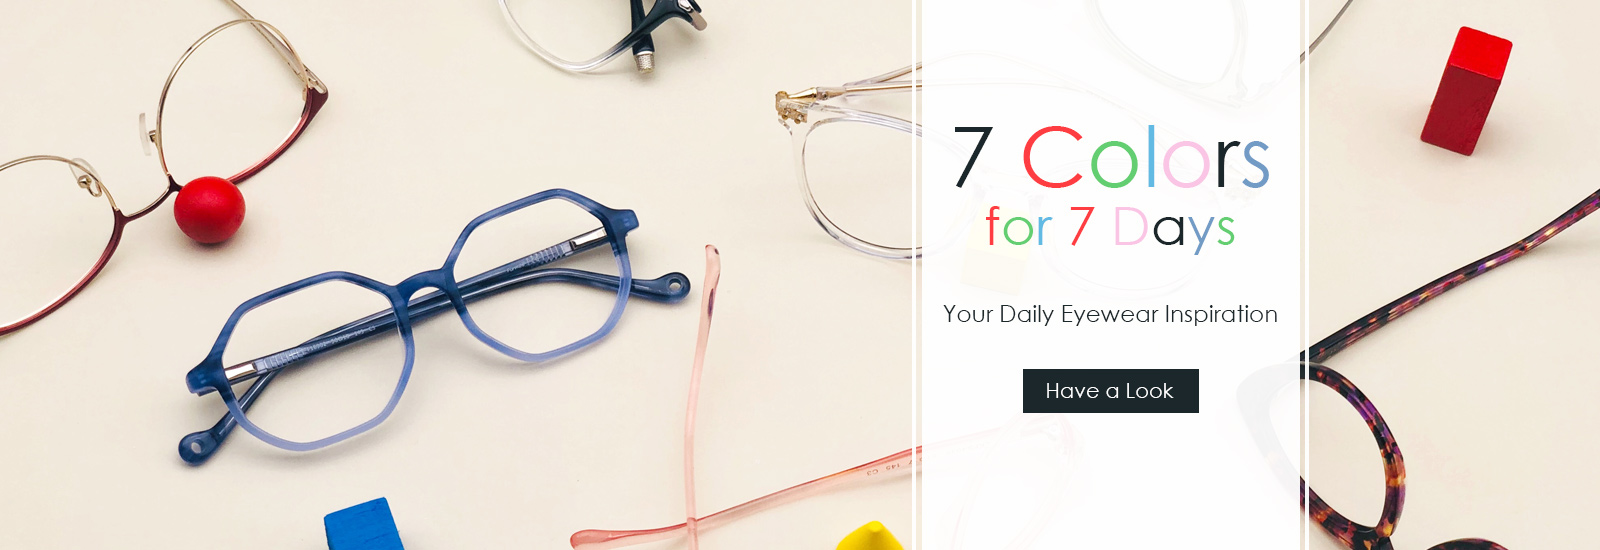 493b4cecd3c Firmoo.com - Your Preferred Online Eyewear Store - Glasses ...